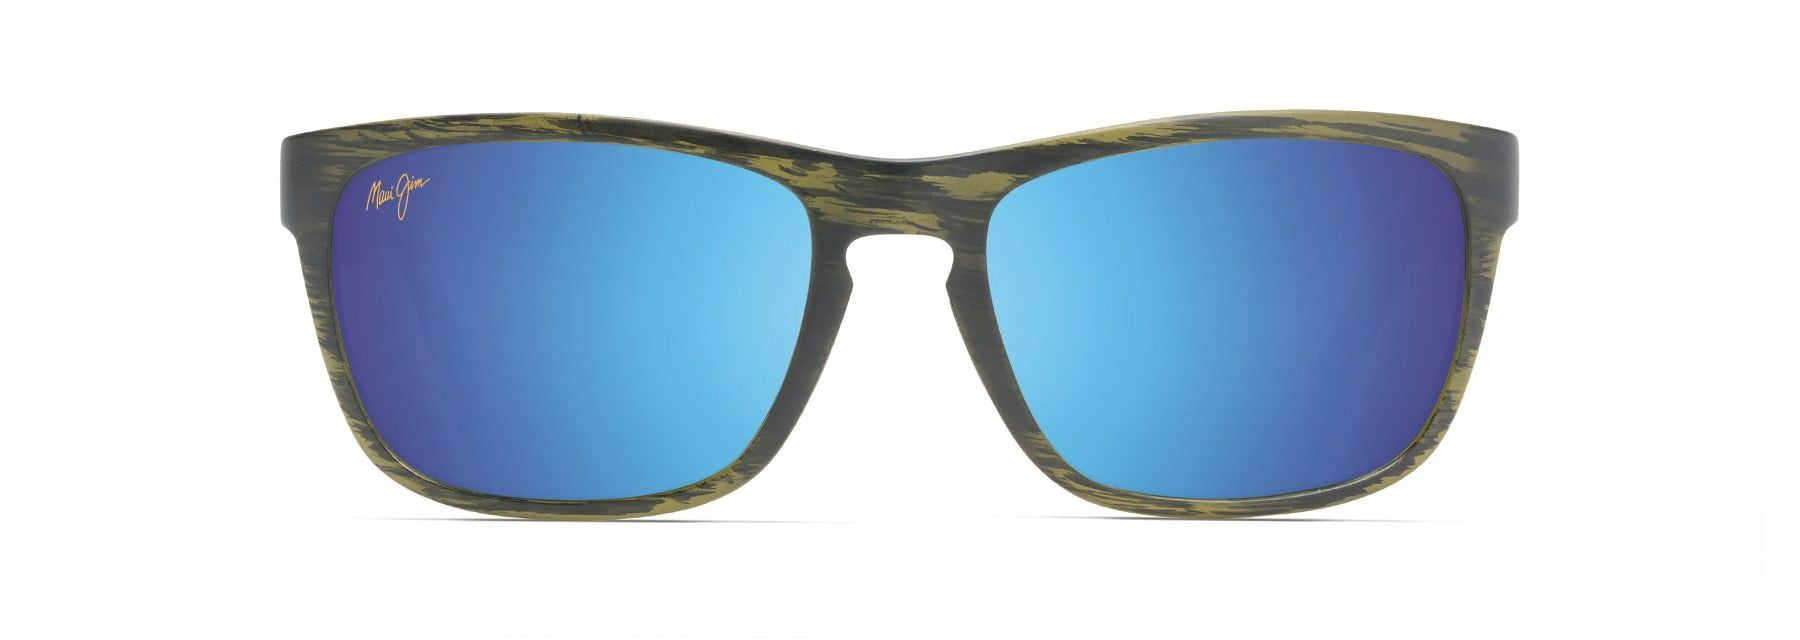 MyMaui South Swell MM755-025 Sunglasses